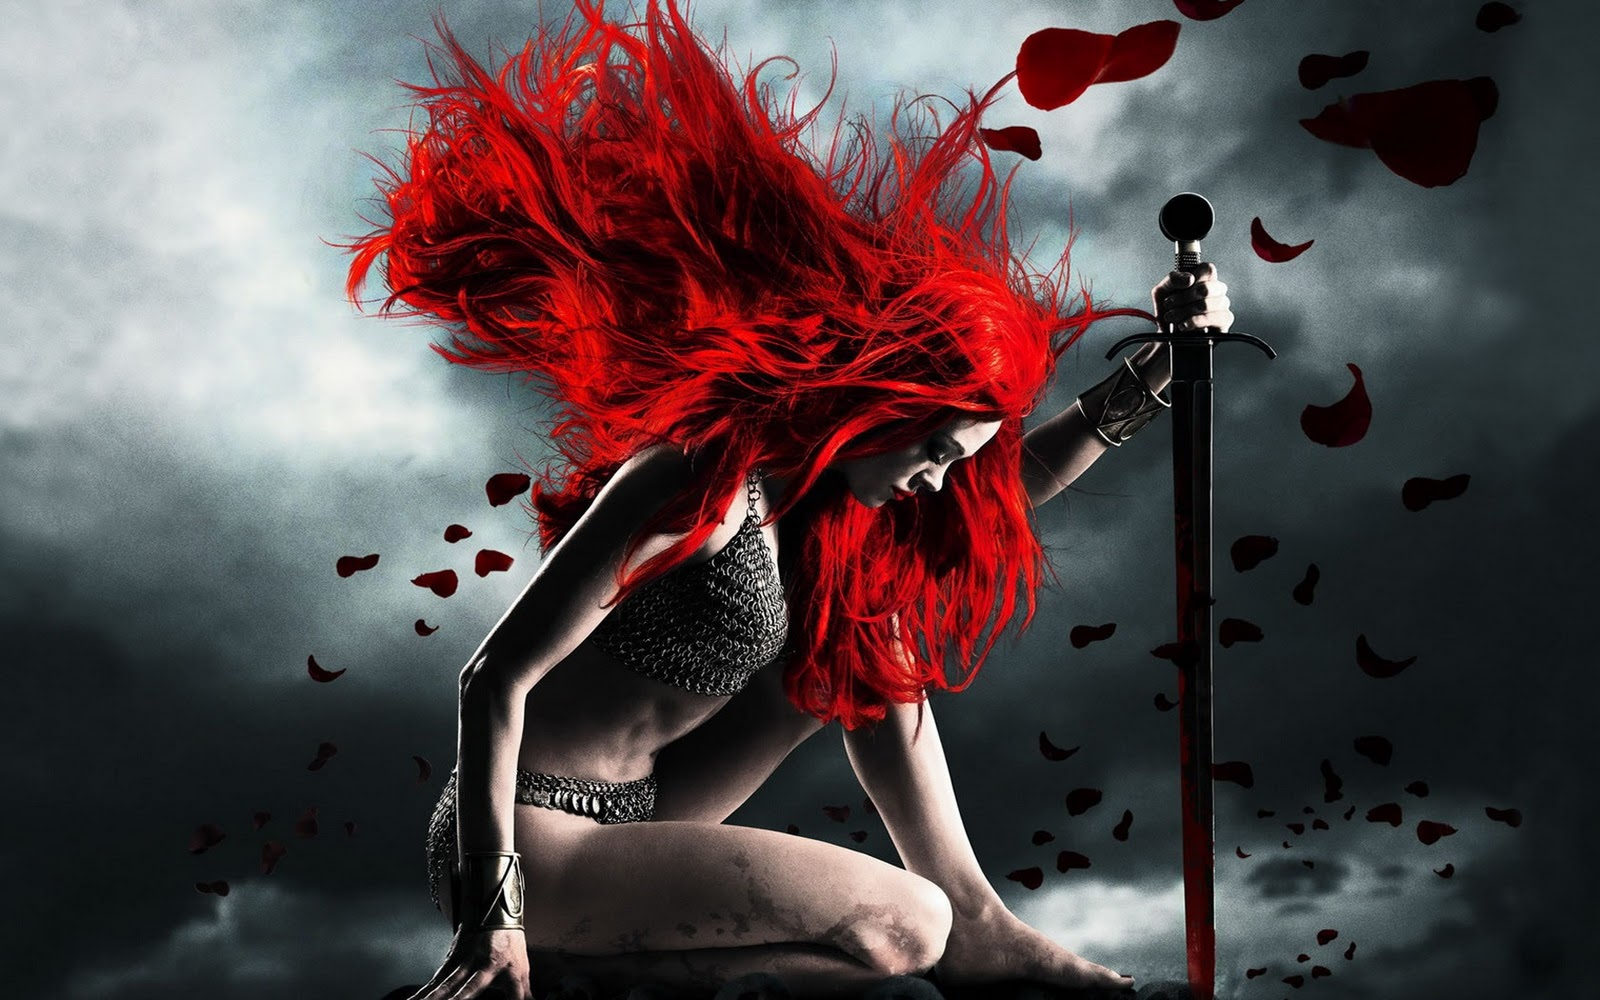 http://2.bp.blogspot.com/_Gq1jO6iuU2U/TS41W7WijrI/AAAAAAAAHbs/JXTuwGxQYxI/s1600/sexy%20warrior%20girl%20red%20hair%20hd%20wallpaper.jpg